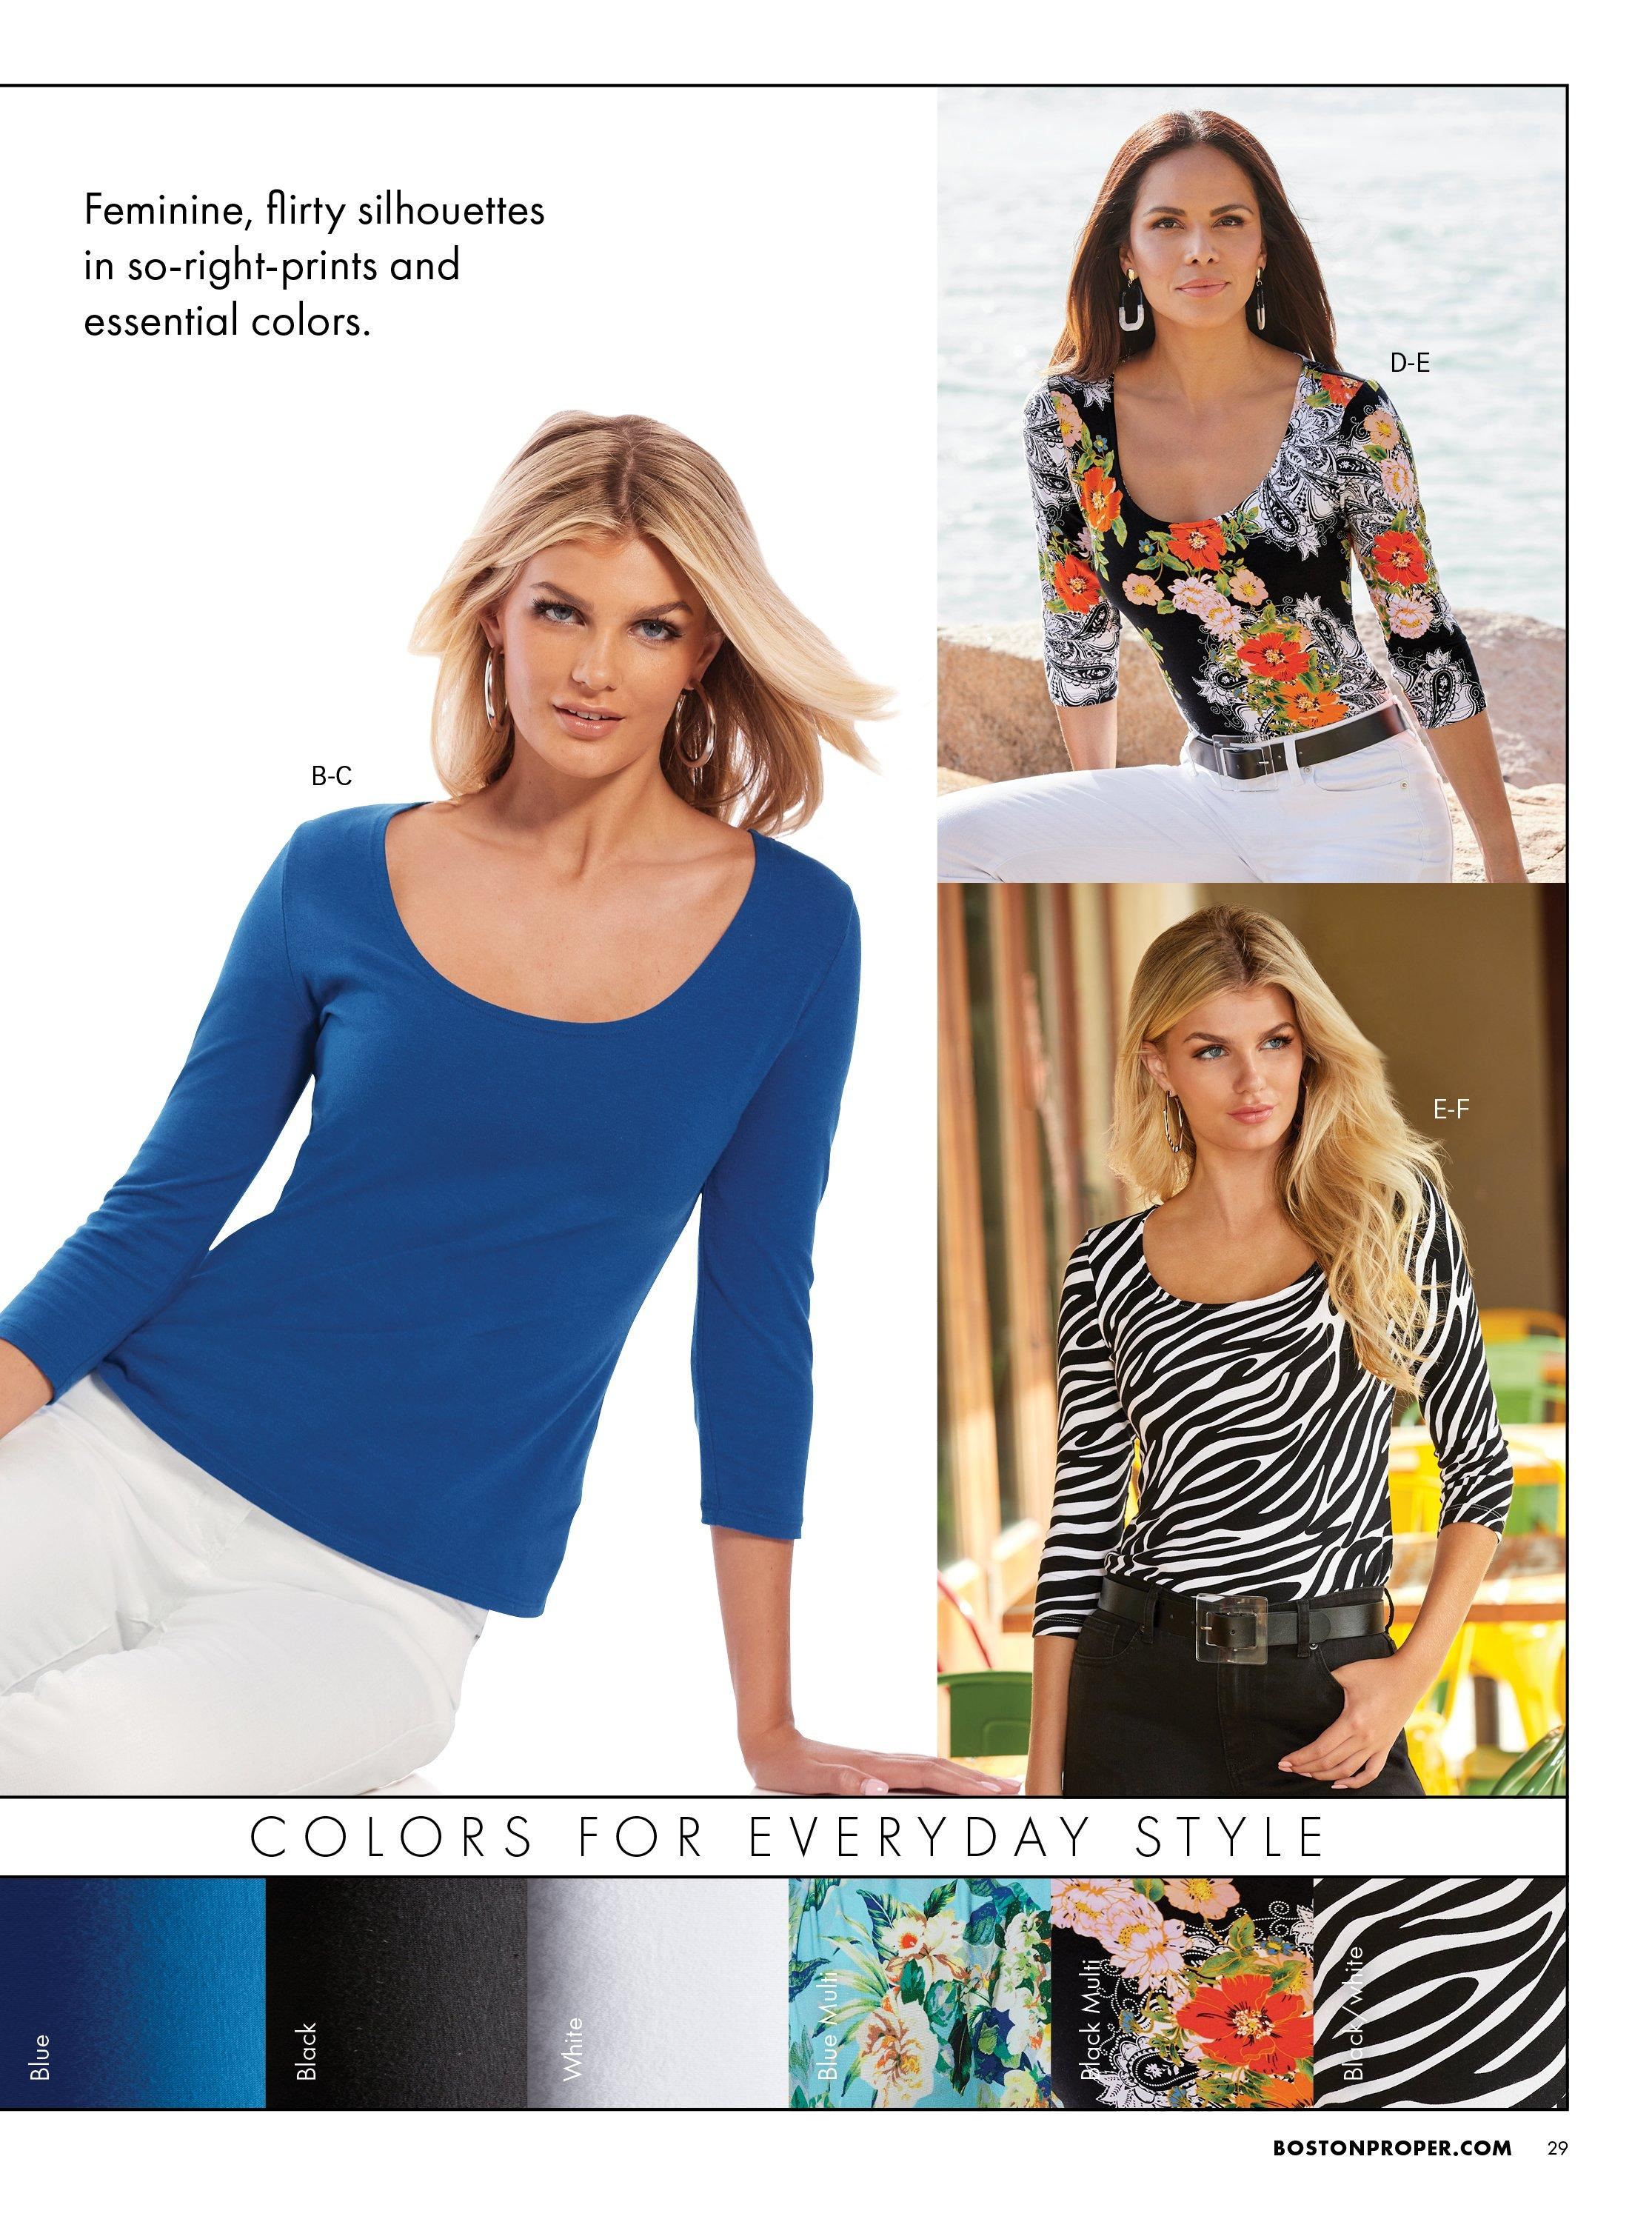 left model wearing a blue scoop neck three-quarter sleeve top and white pants. top right model wearing a floral print scoop neck three-quarter sleeve top and white pants. bottom right model wearing a zebra print scoop neck three-quarter sleeve top and black pants.